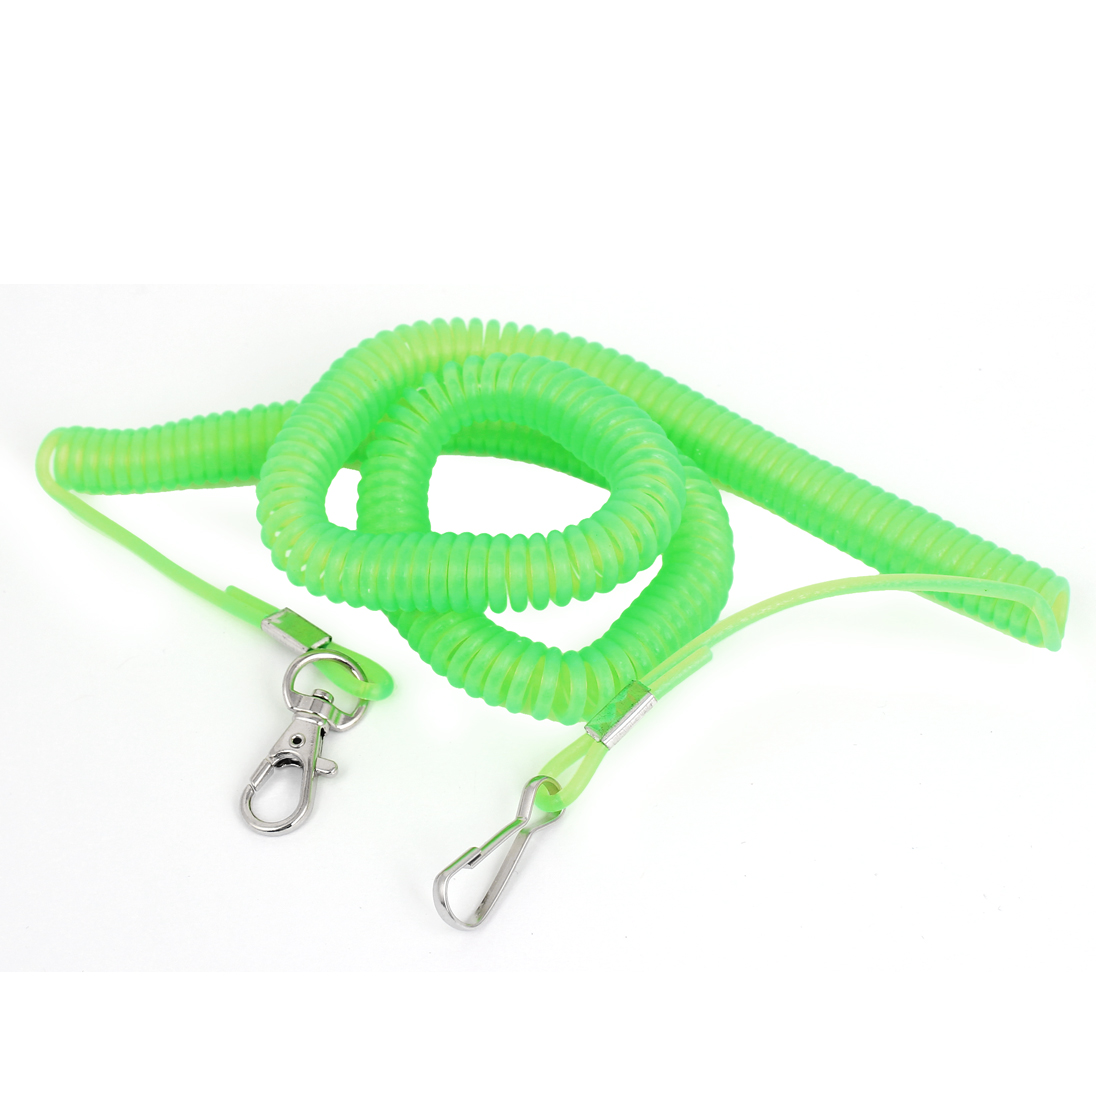 Angling Fishing Rod Net Release Bright Green Coiled Lanyard Rope 5 Meter